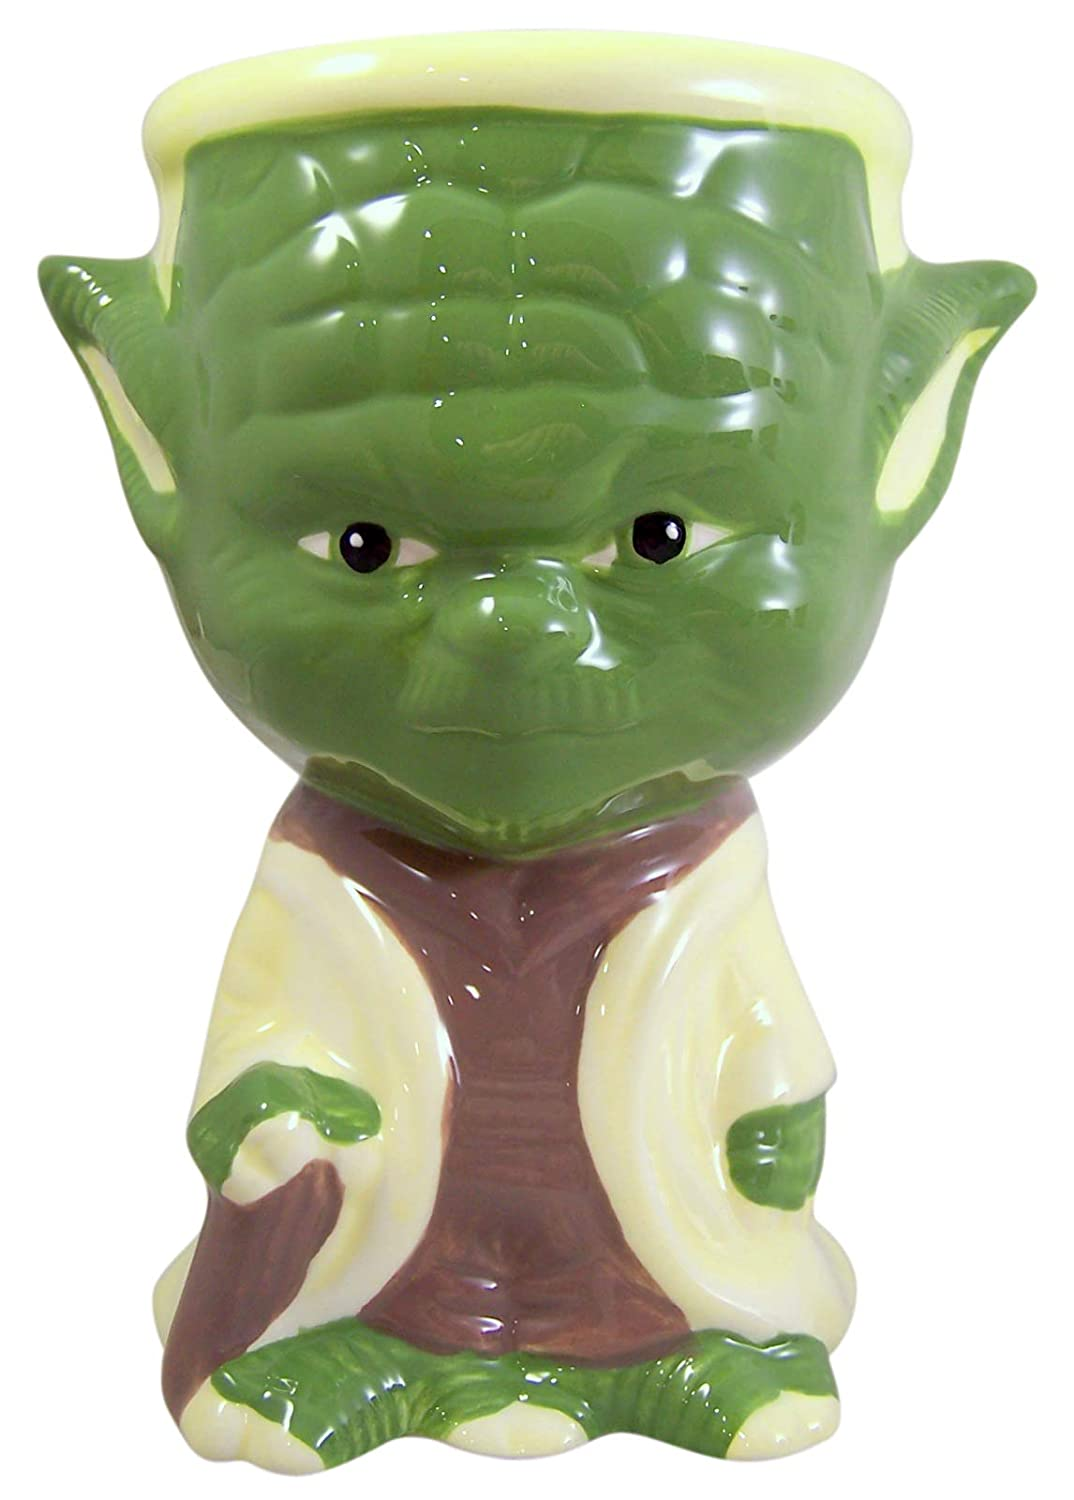 10 oz Star Wars Character Shaped Collectible Drink Goblet Cups with Hot Cocoa Mix Pack of 8